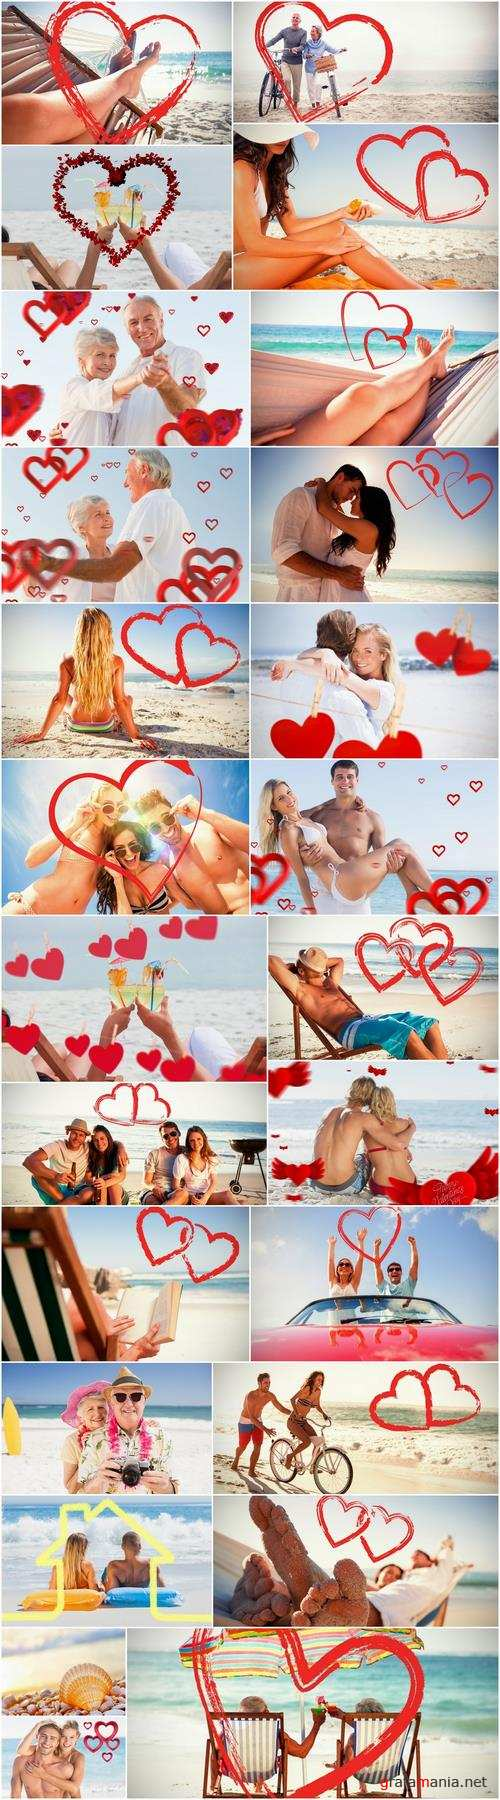 Holiday Valentines Day couple beach sea vacation travel 25 HQ Jpeg